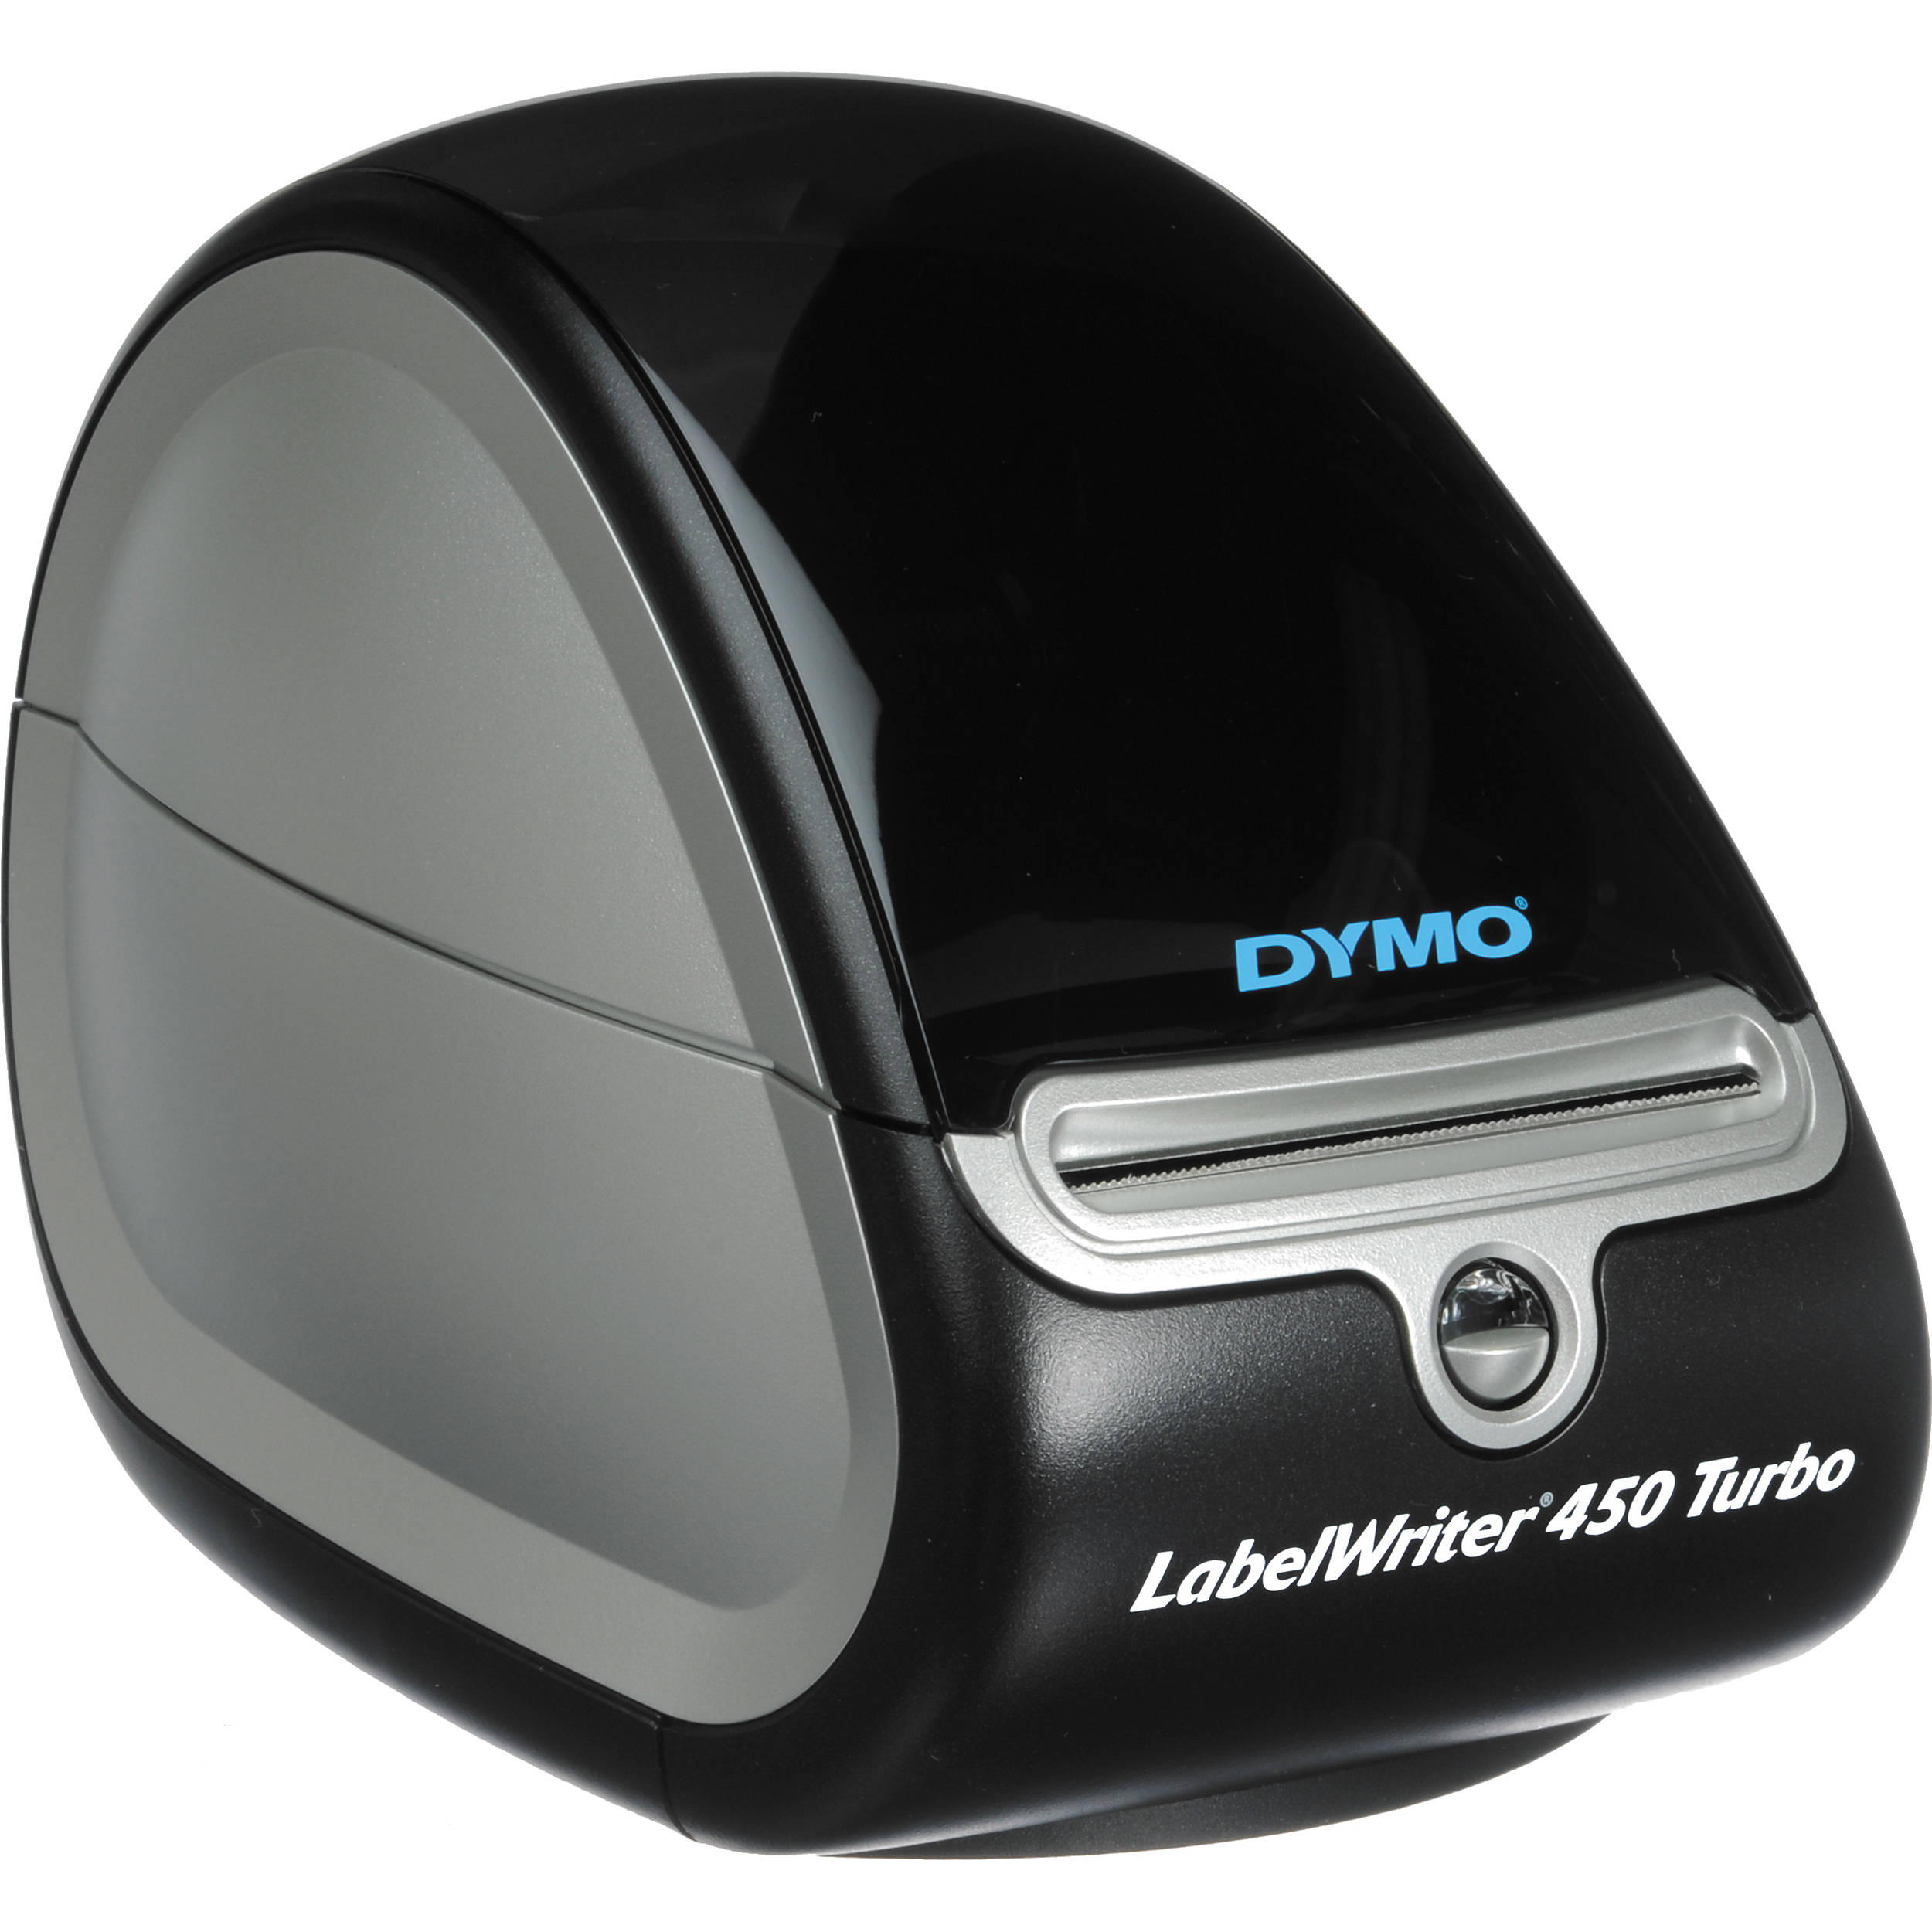 Dymo labelwriter 450 turbo usb label printer 1752265 bh photo for Dymo label stickers